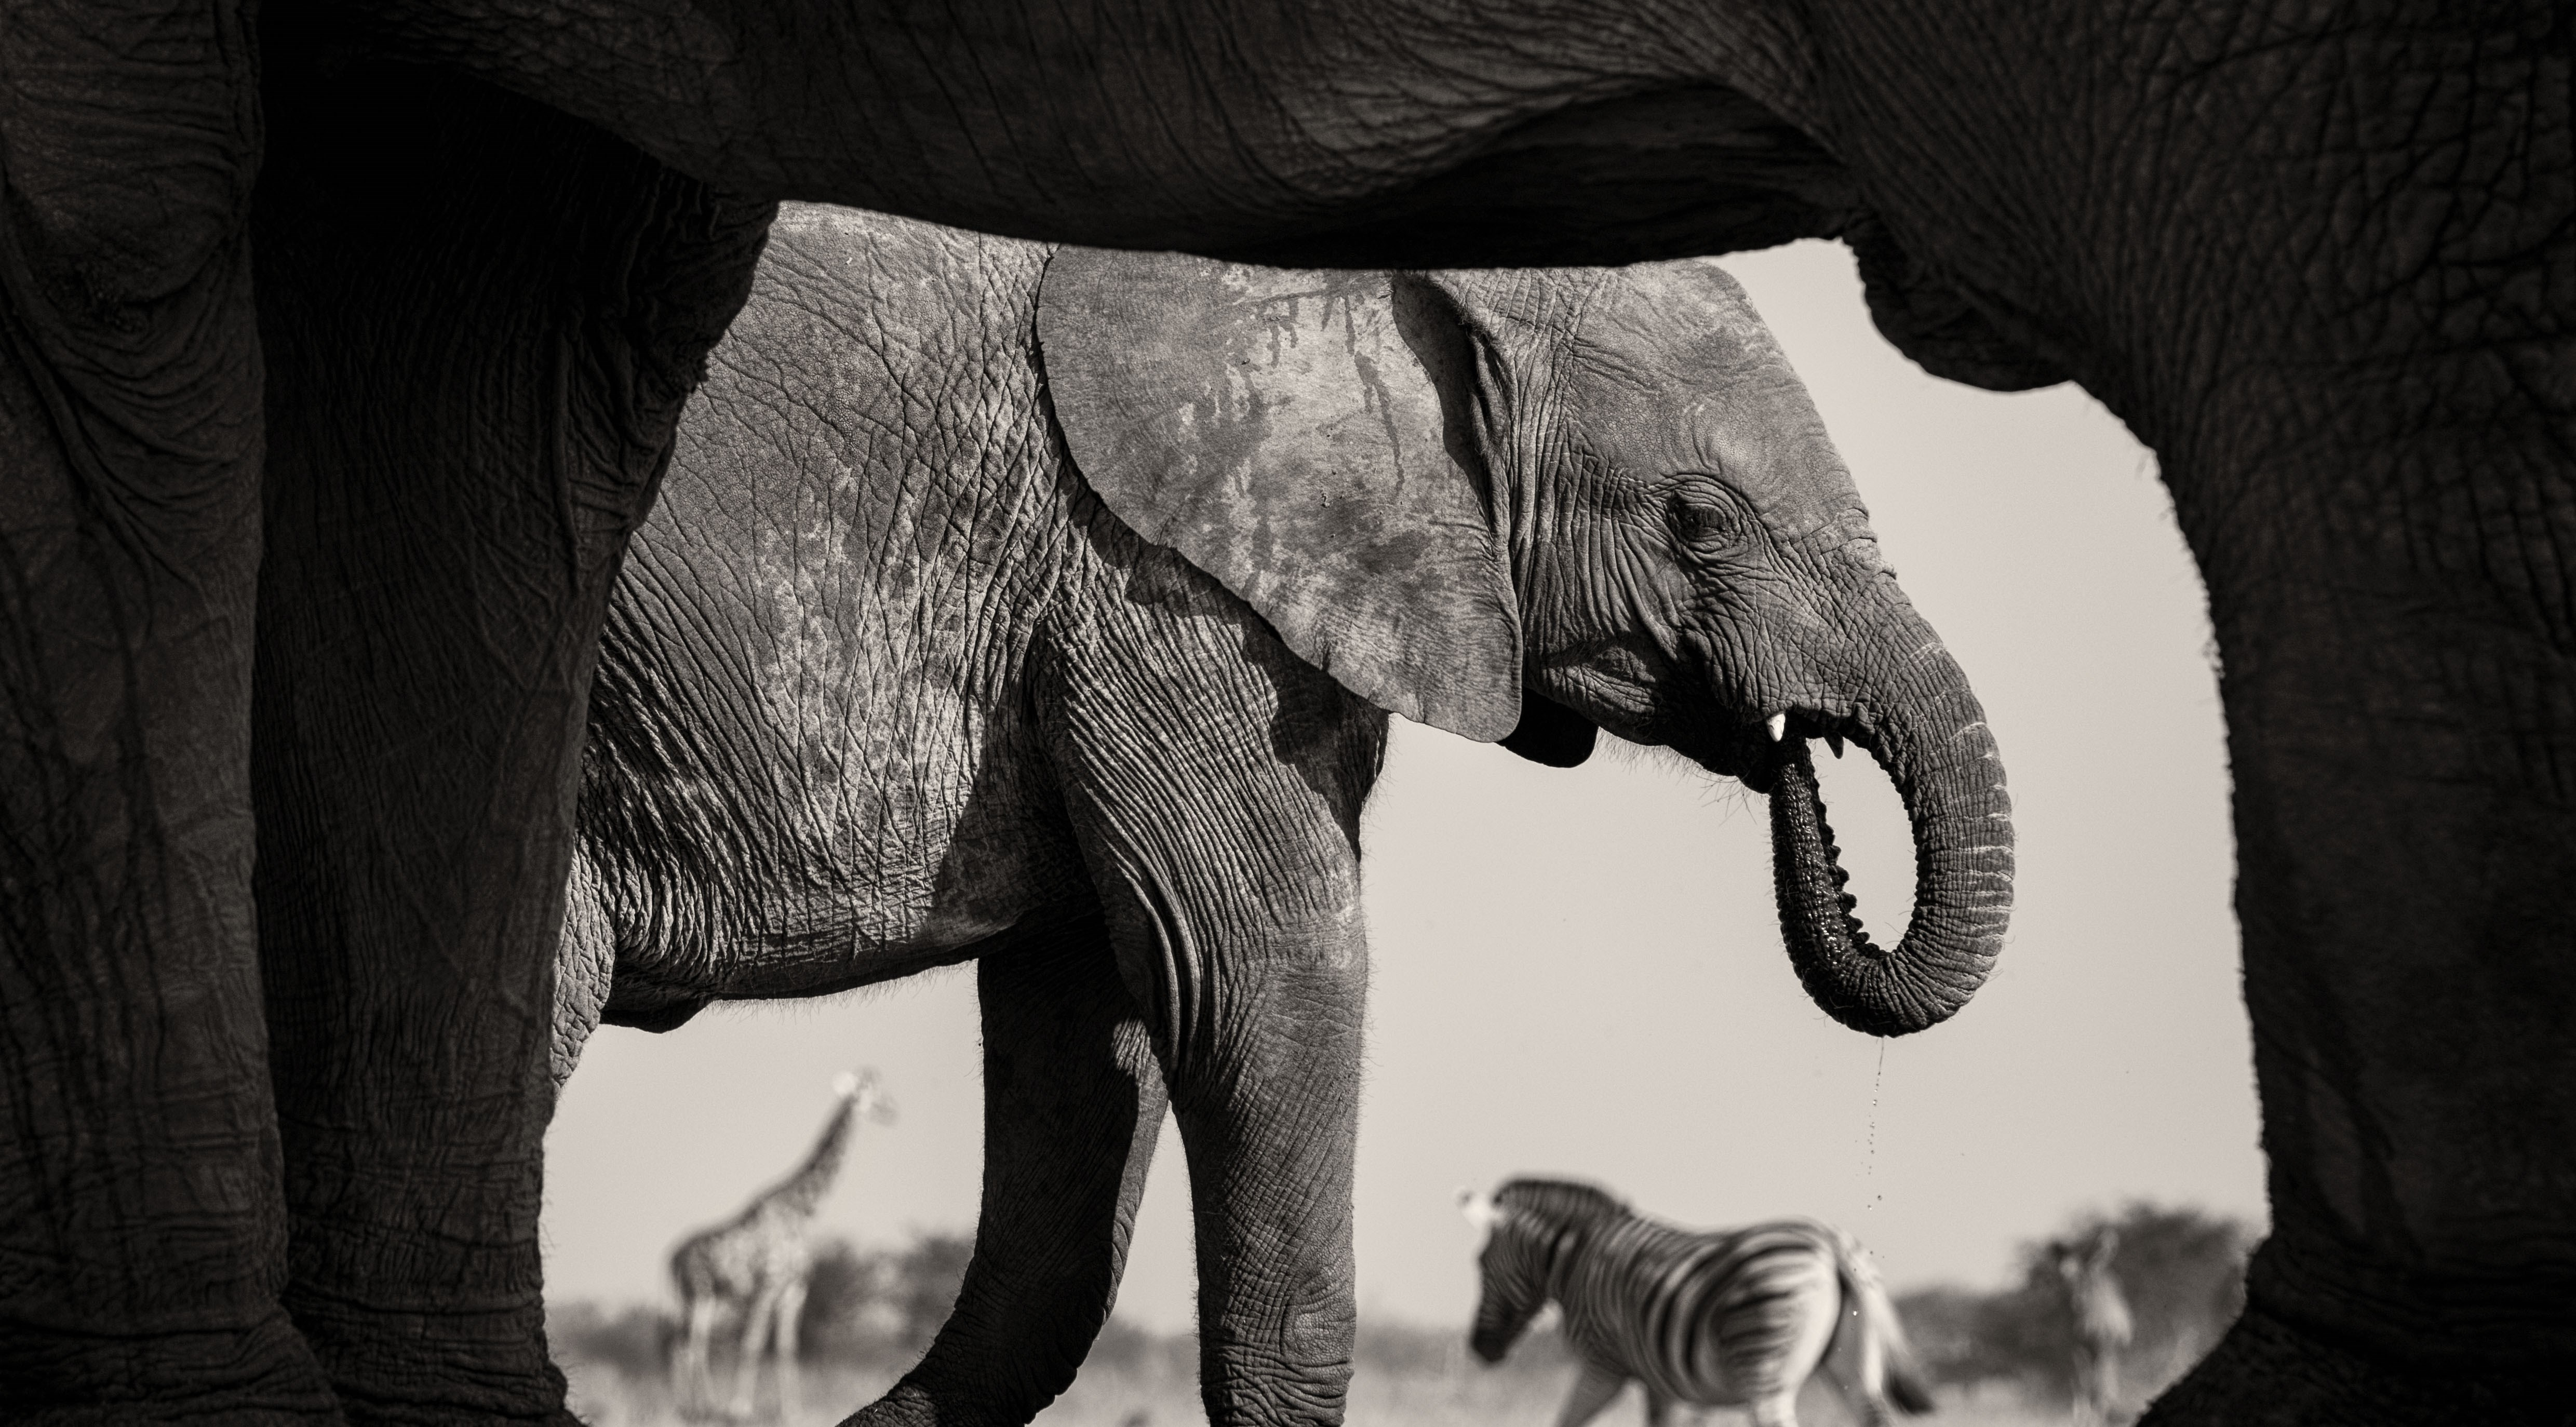 Wildlife Photographer of the Year exhibition returning to Wolverhampton Art Gallery